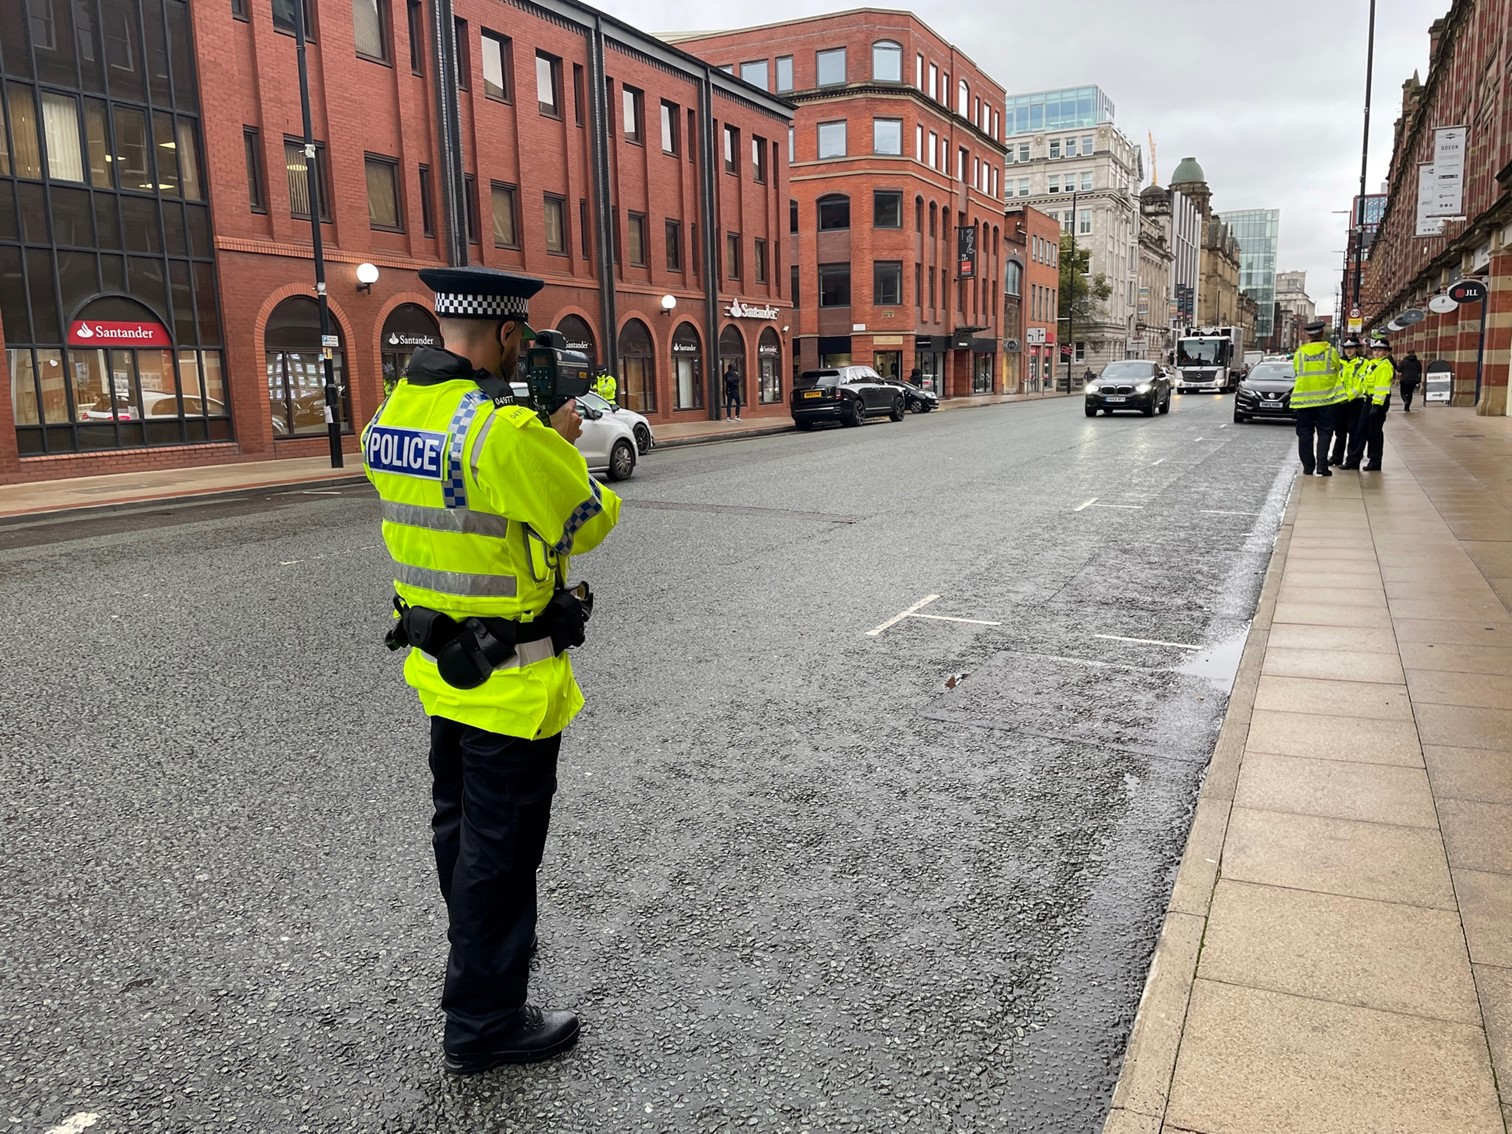 Police Now officers on traffic patrols, Deansgate